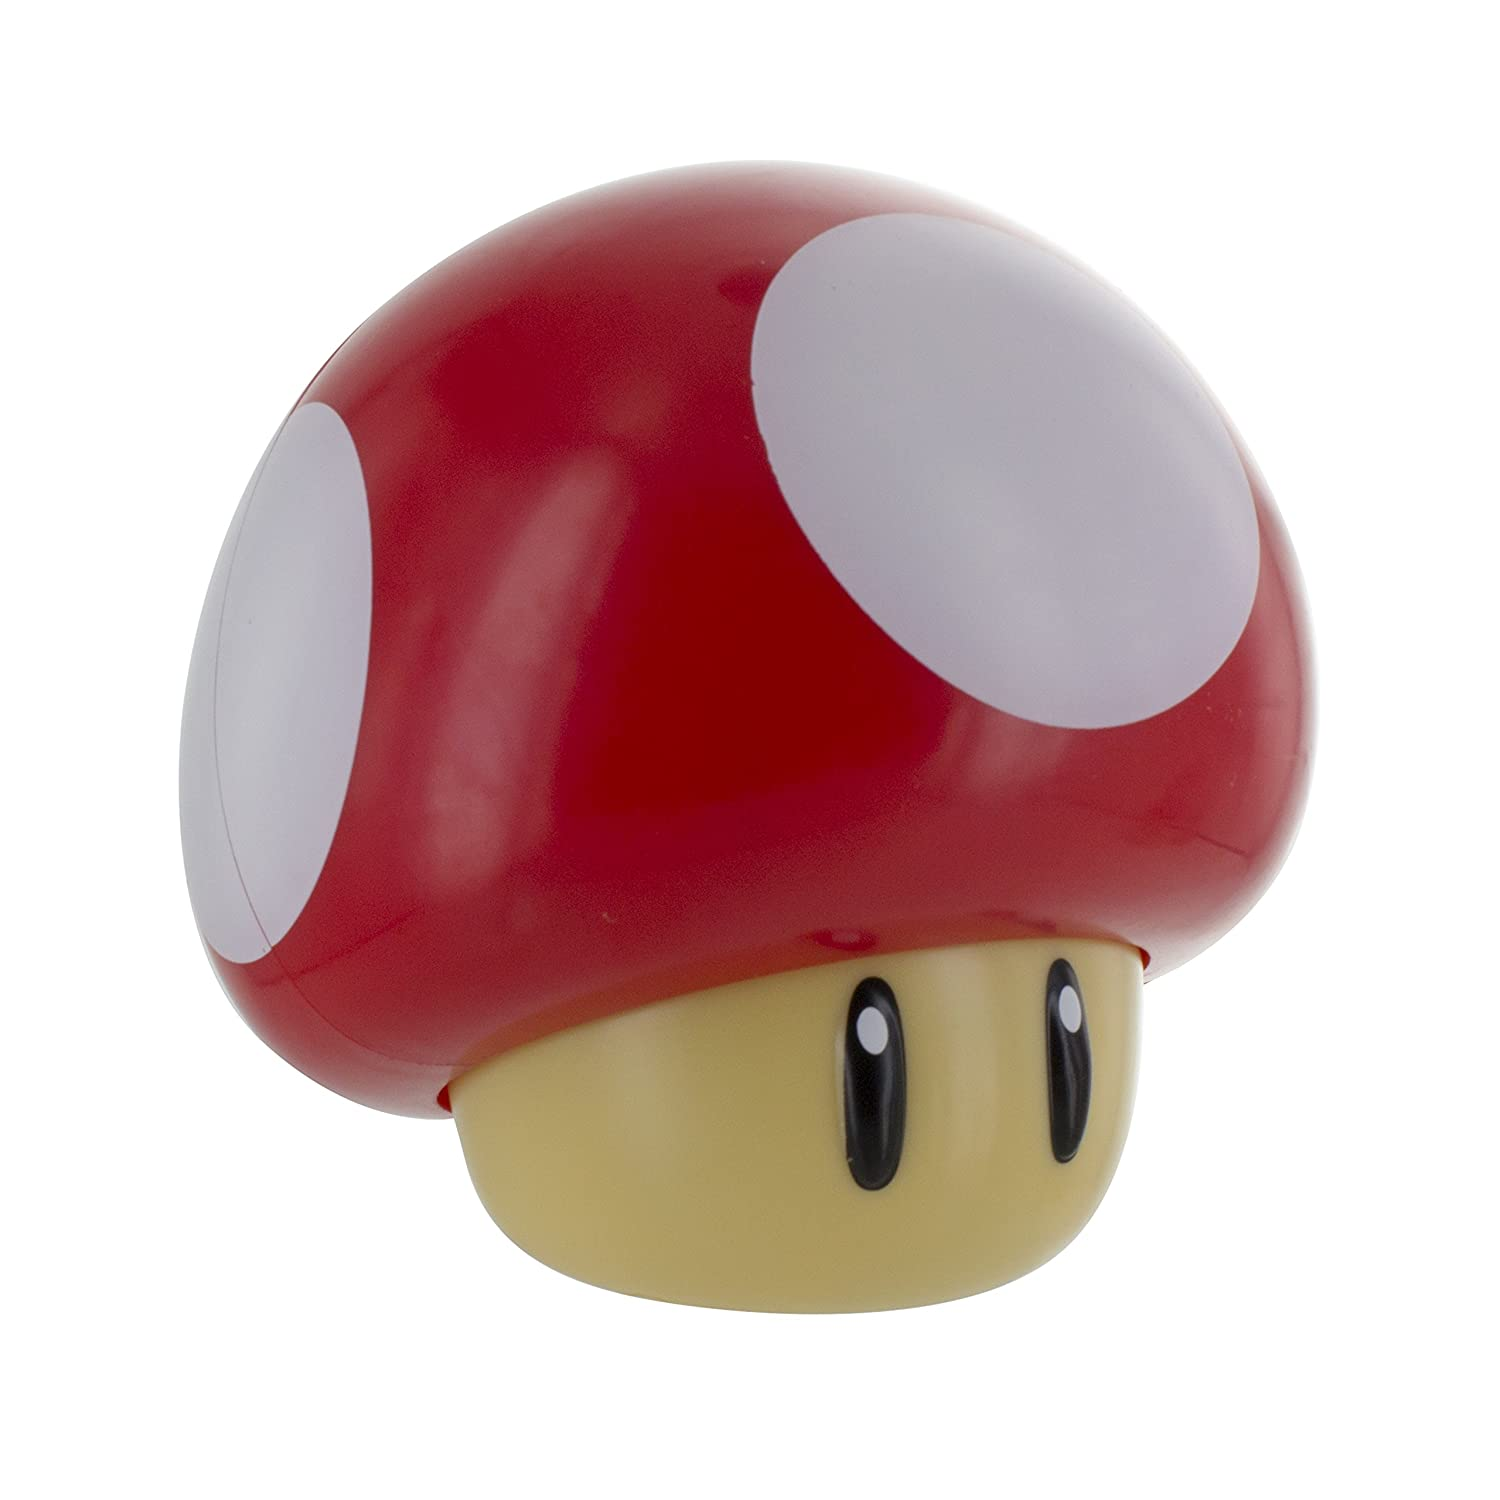 Super Mario Mushroom Light with Sound, Multi-Colour Paladone Products Ltd. PP4017NN